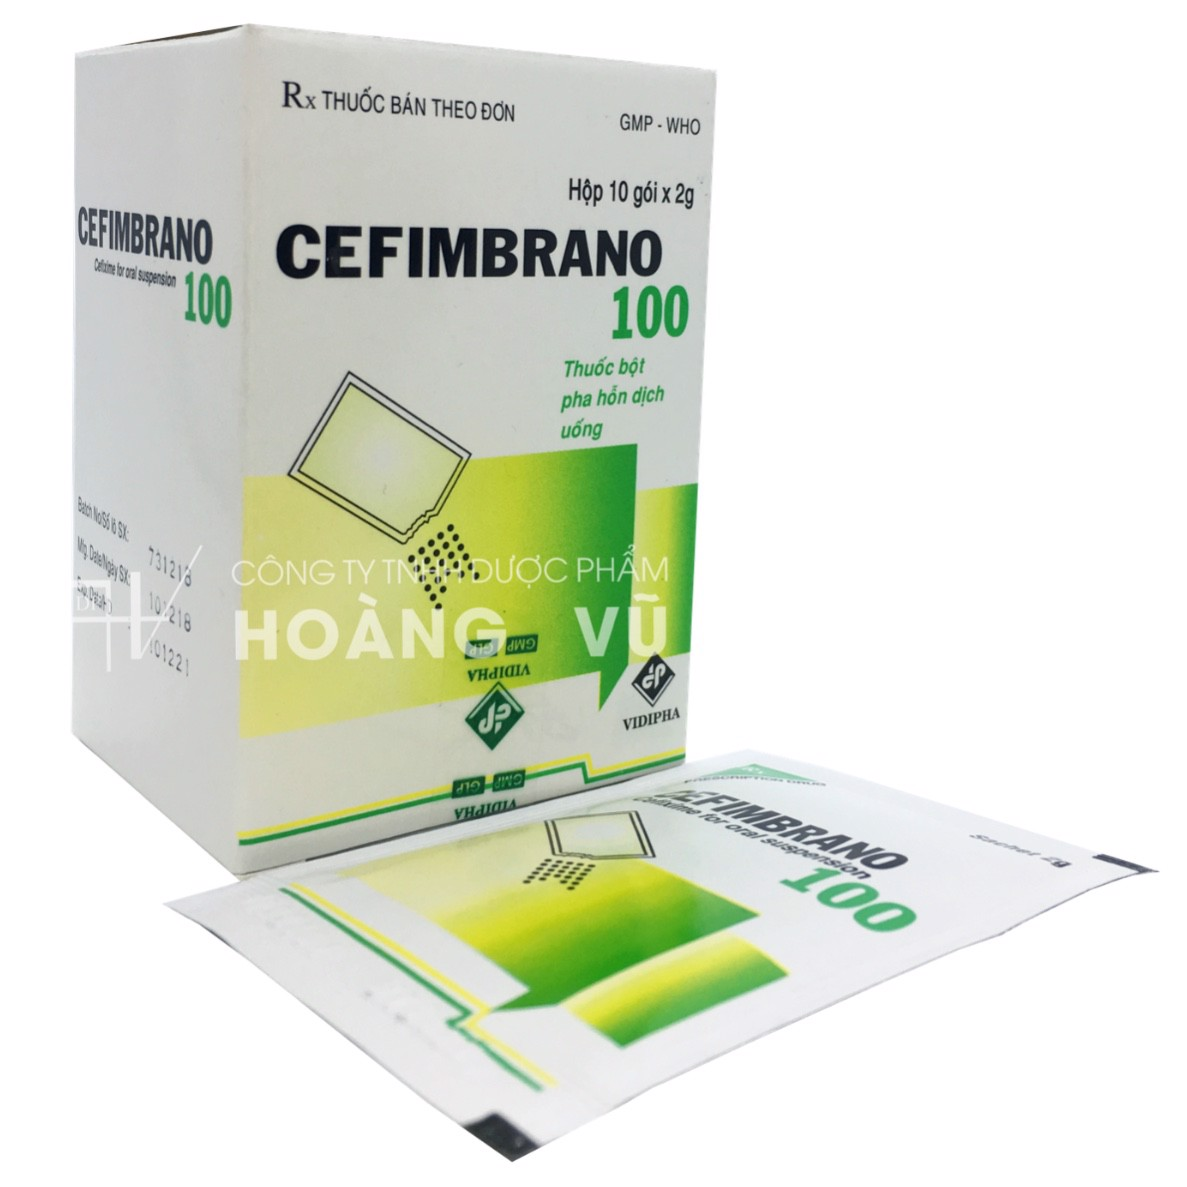 CEFIMBRANO 100 (T/200H/10G)